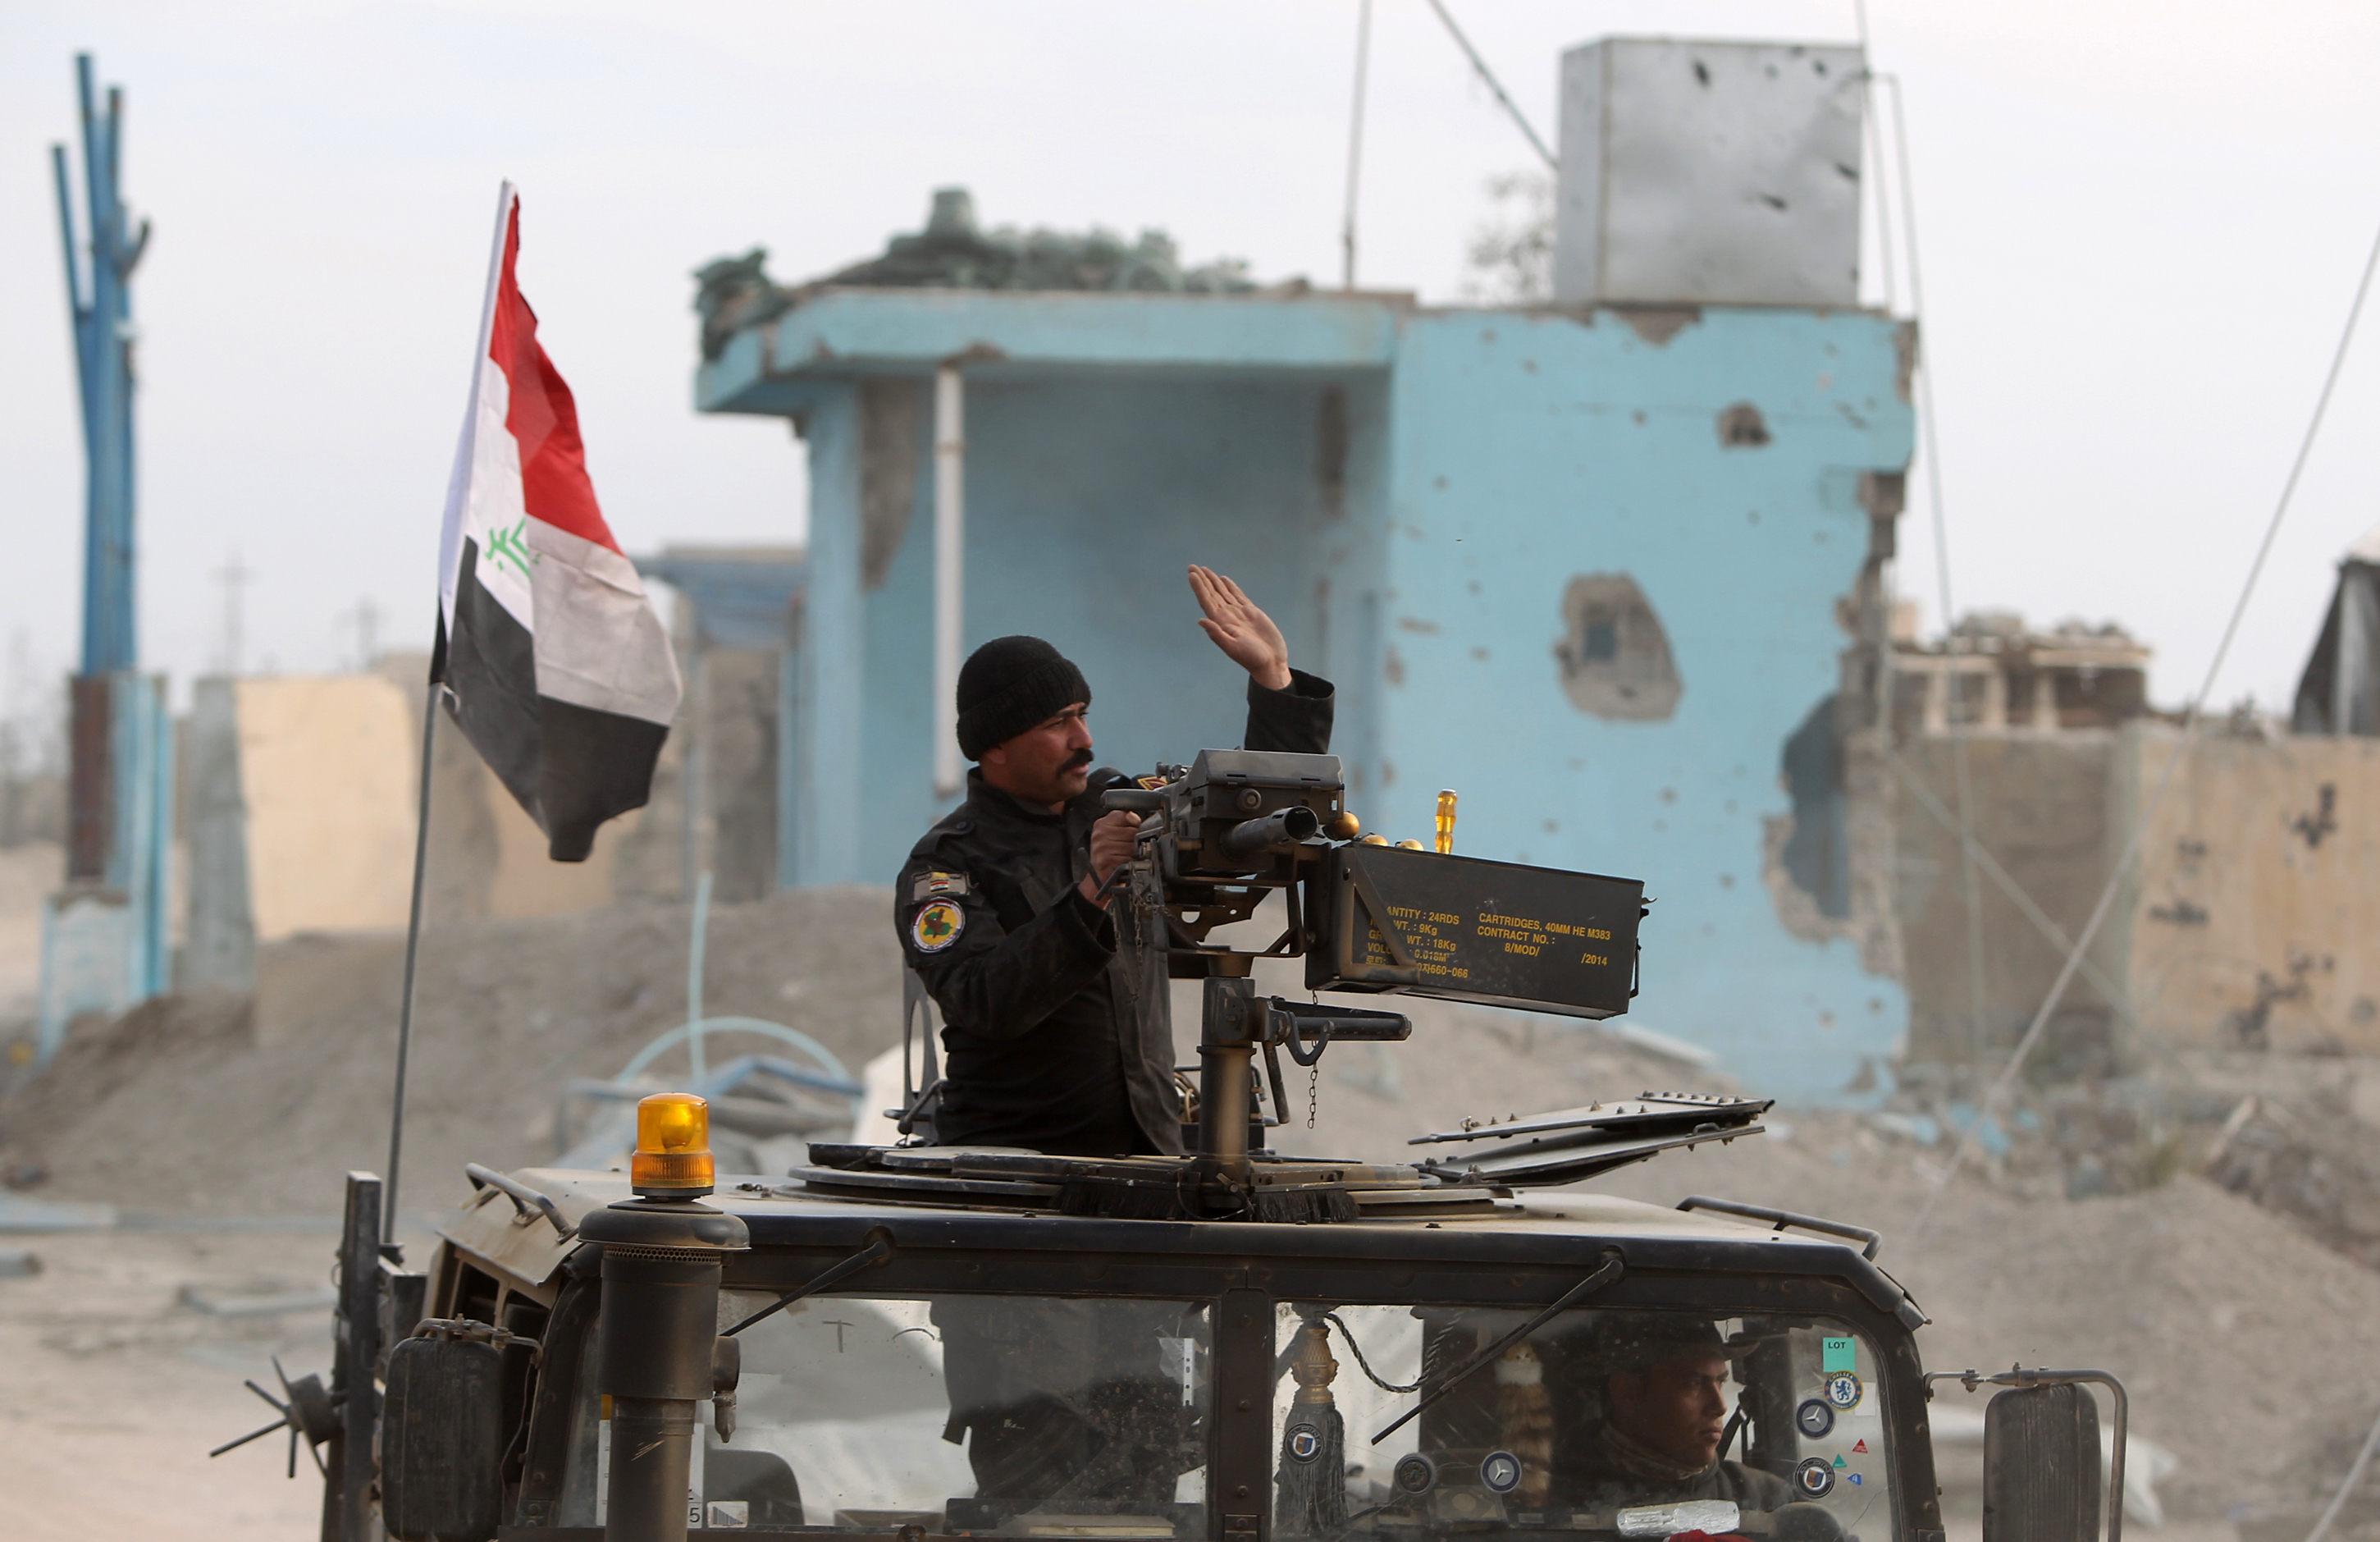 Members of Iraq's elite counterterrorism service secure on Dec. 27, 2015, the Hoz neighborhood in central Ramadi, the capital of Iraq's Anbar province, about 110 km west of Baghdad, during military operations conducted by Iraqi pro-government forces against the jihadist group ISIS